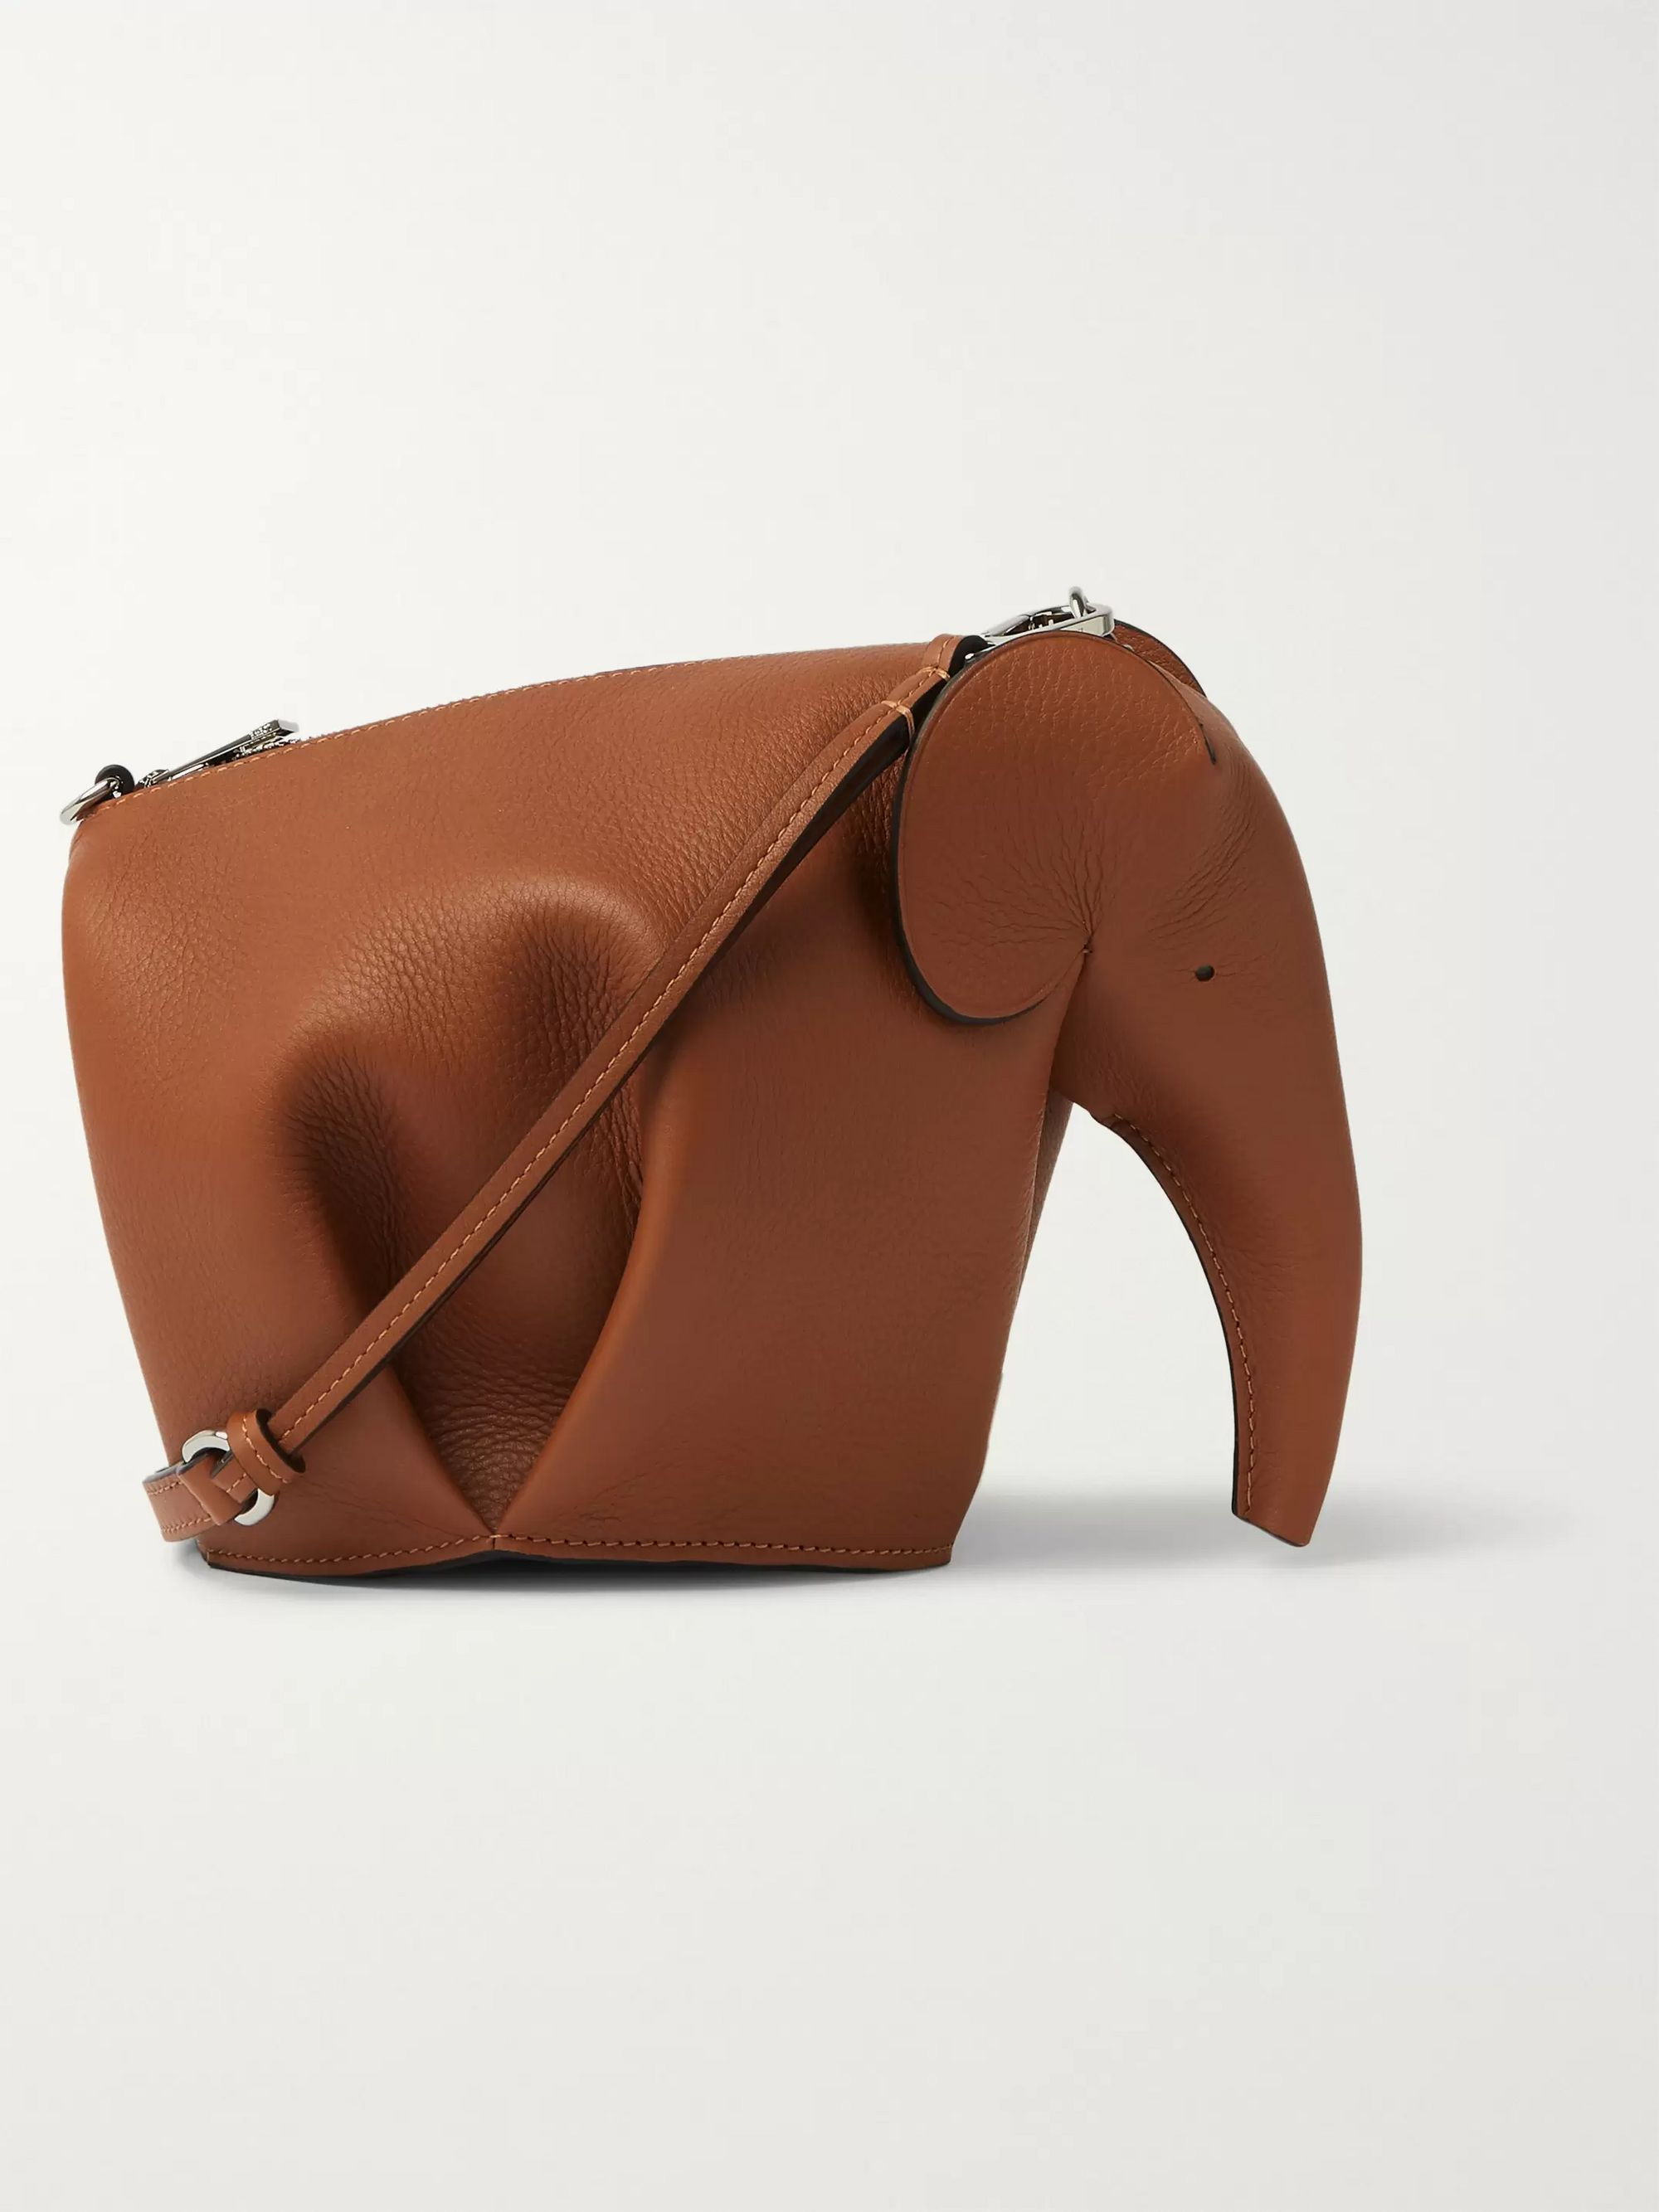 Loewe Elephant Full-Grain Leather Messenger Bag